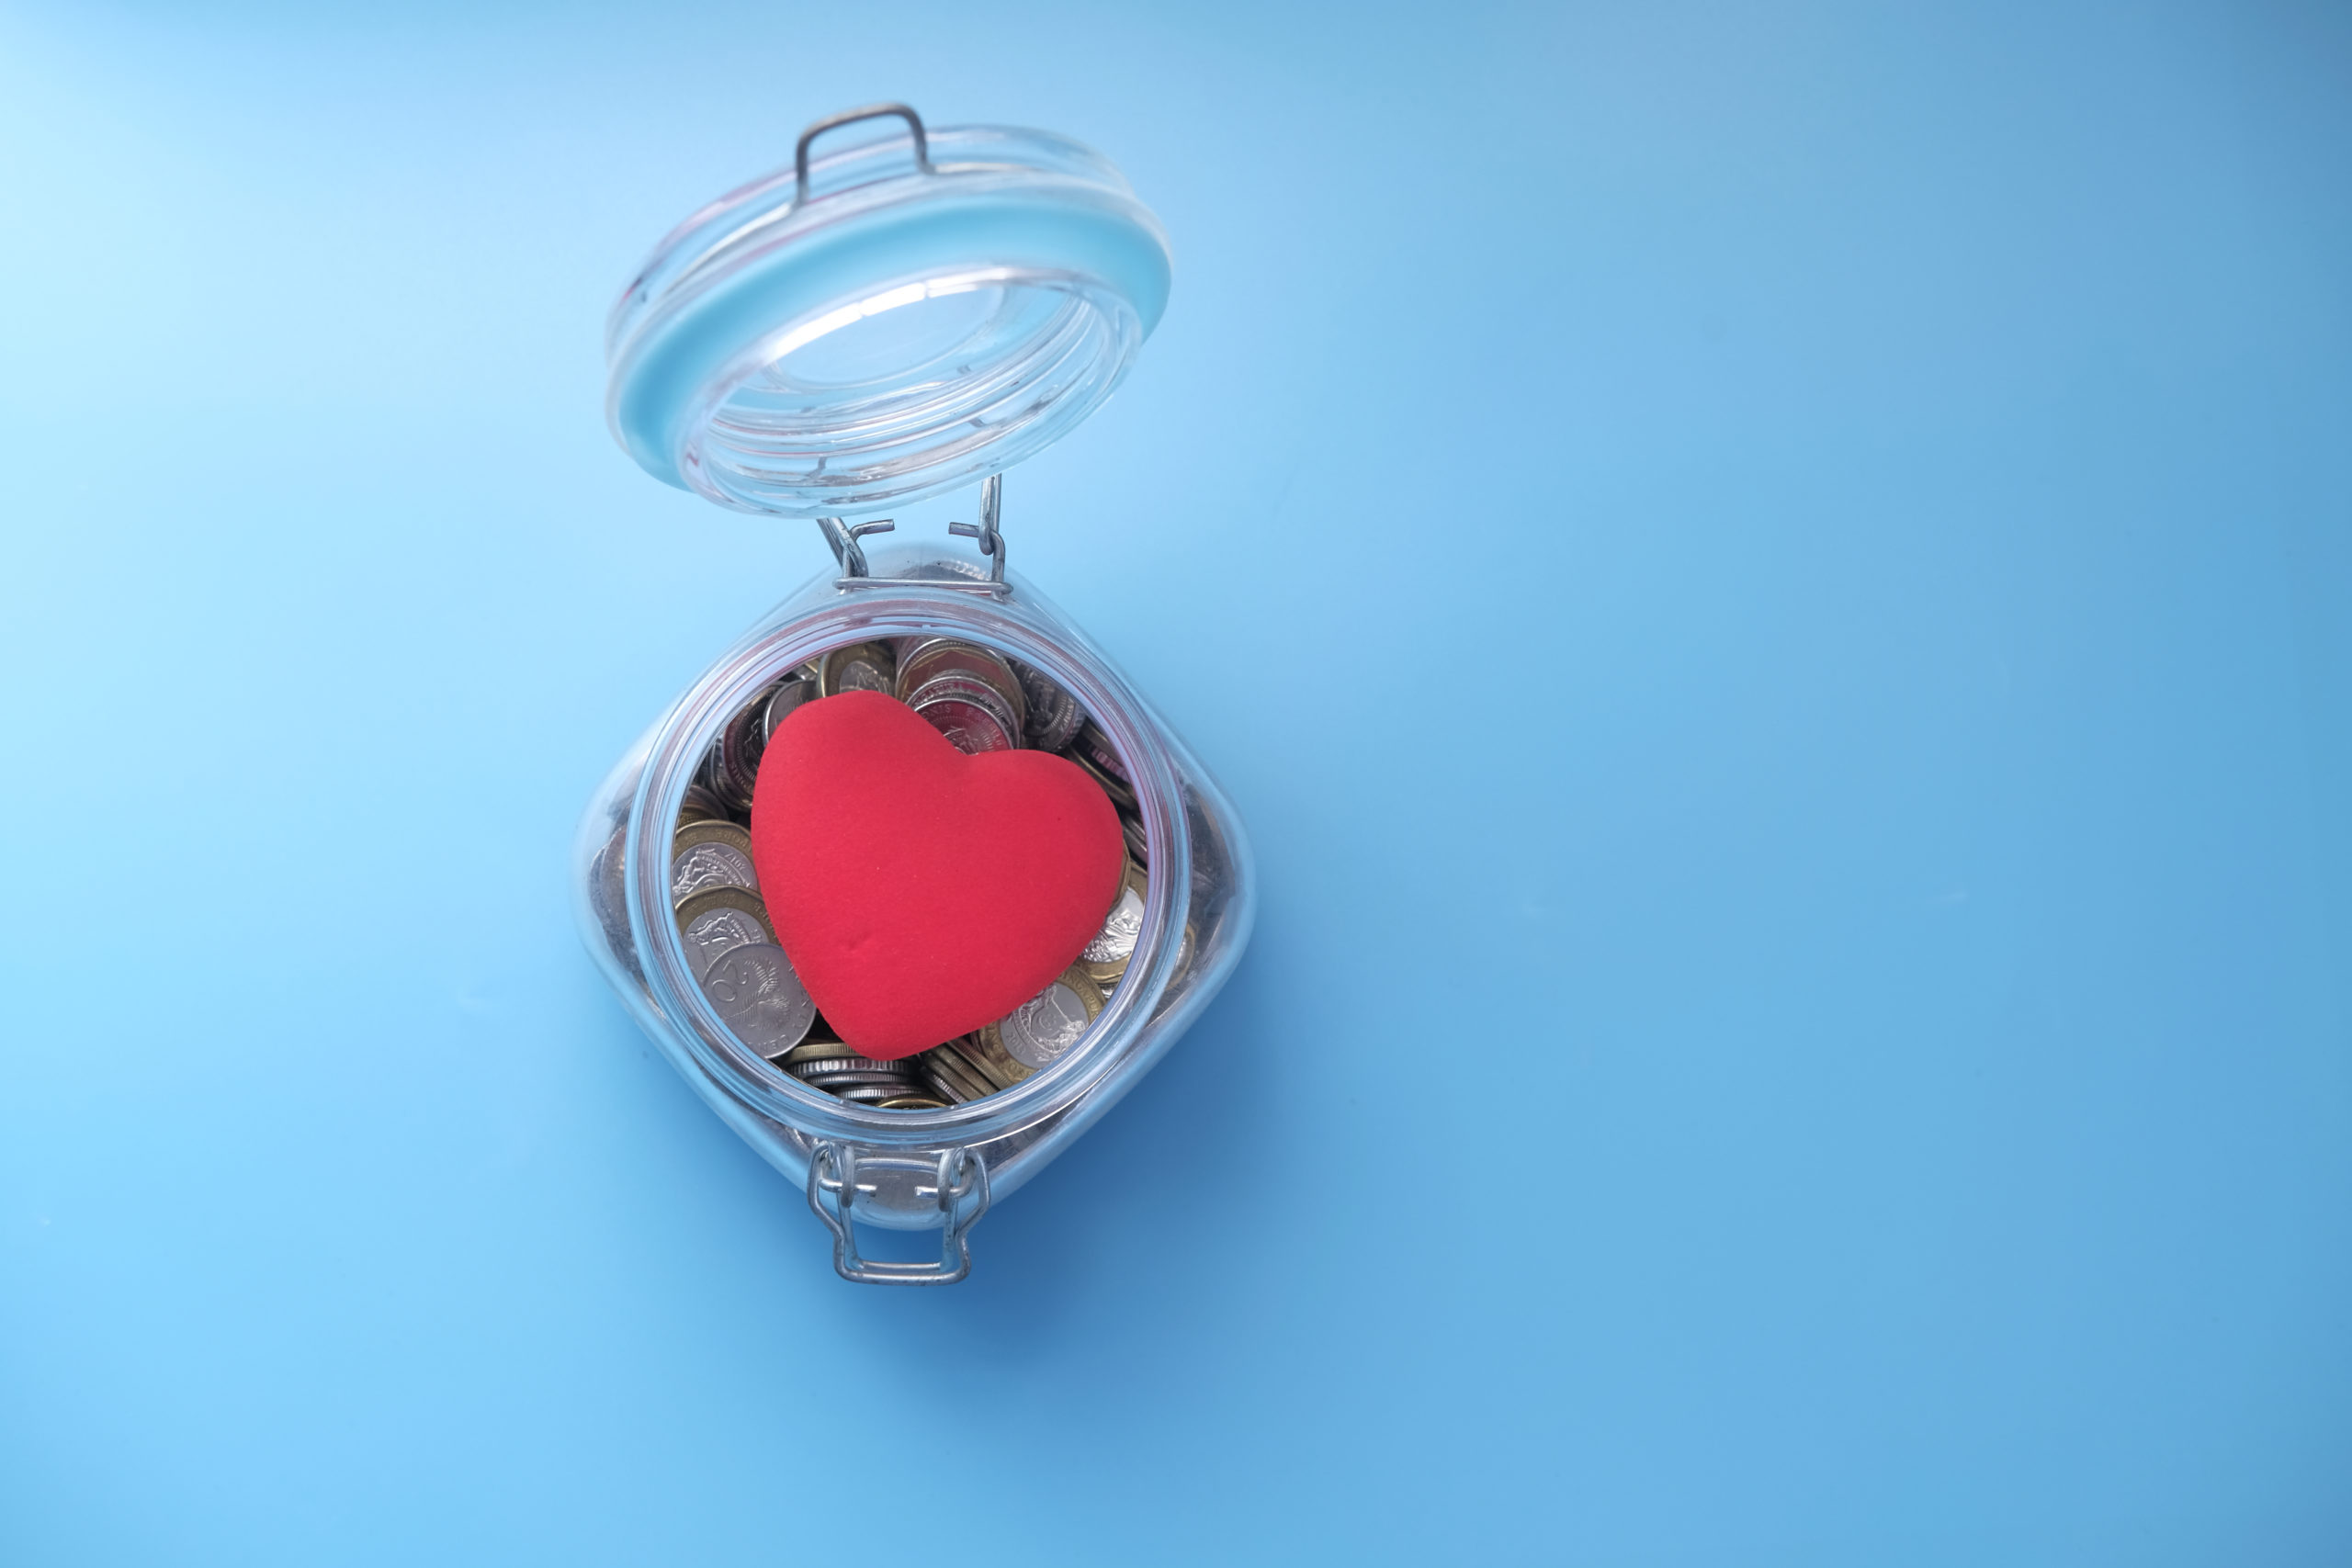 Red heart and coins in a jar on blue background